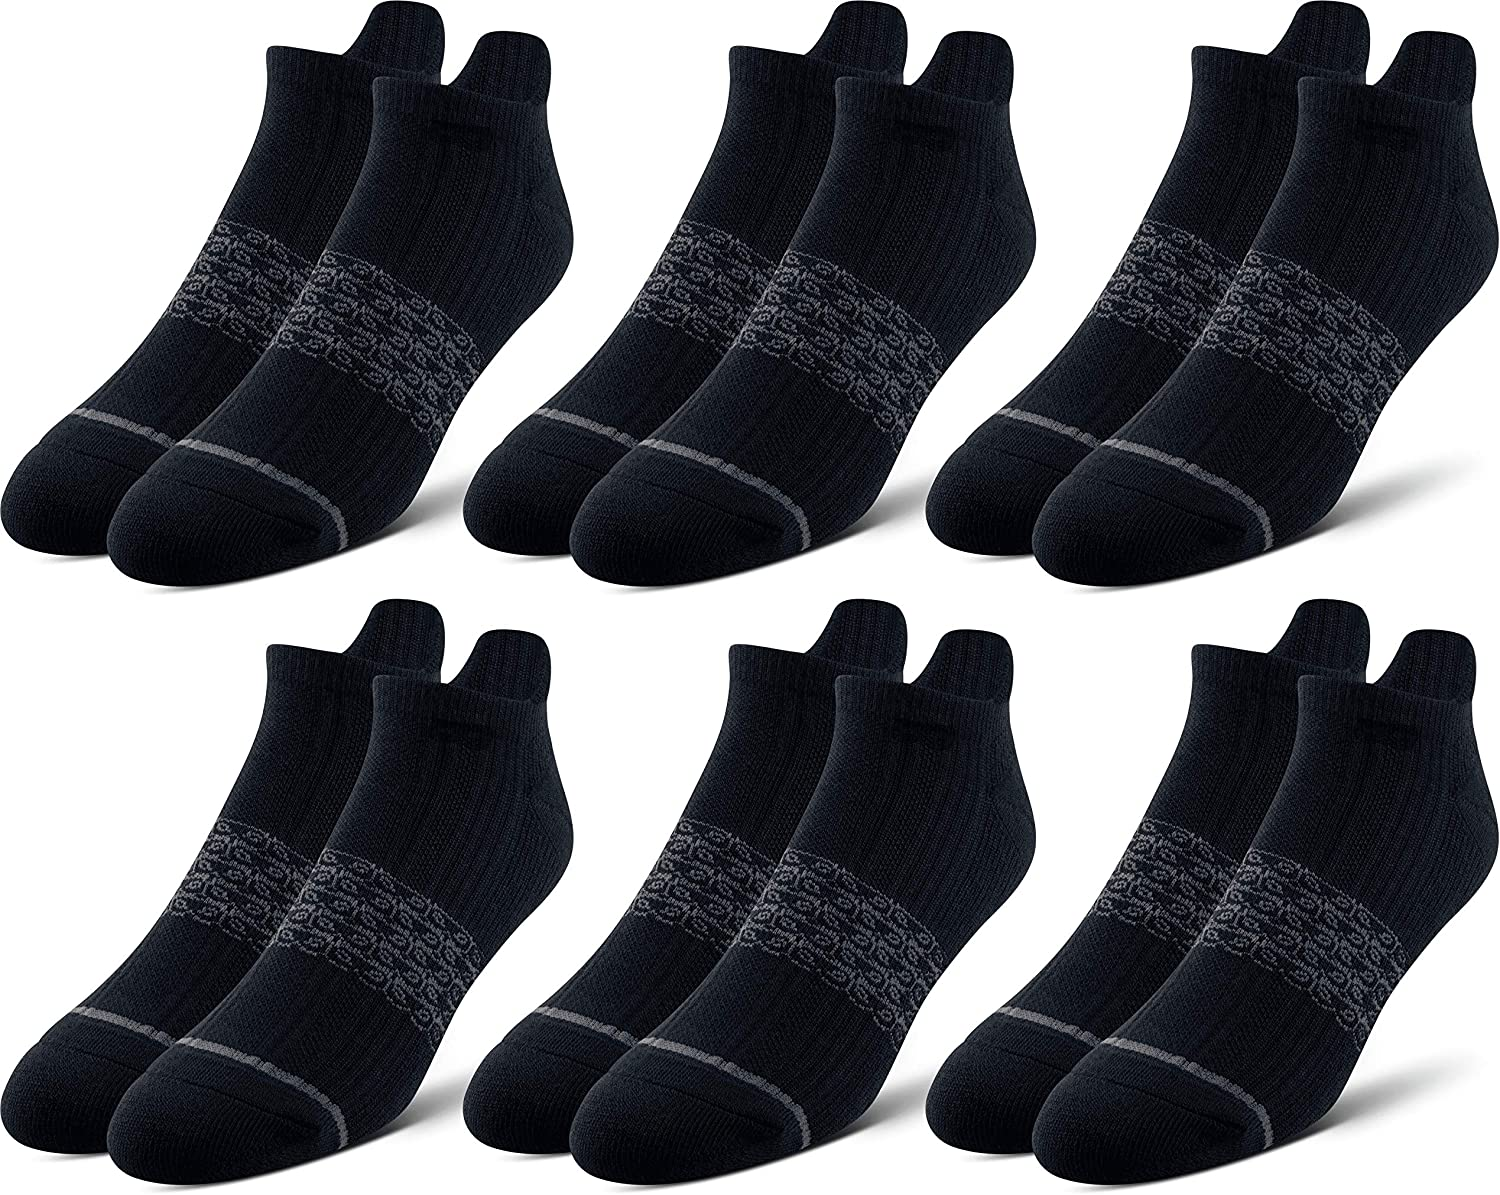 Pair of Thieves Men's 6 Pack Everyday Kit Cushioned Low Cut Socks